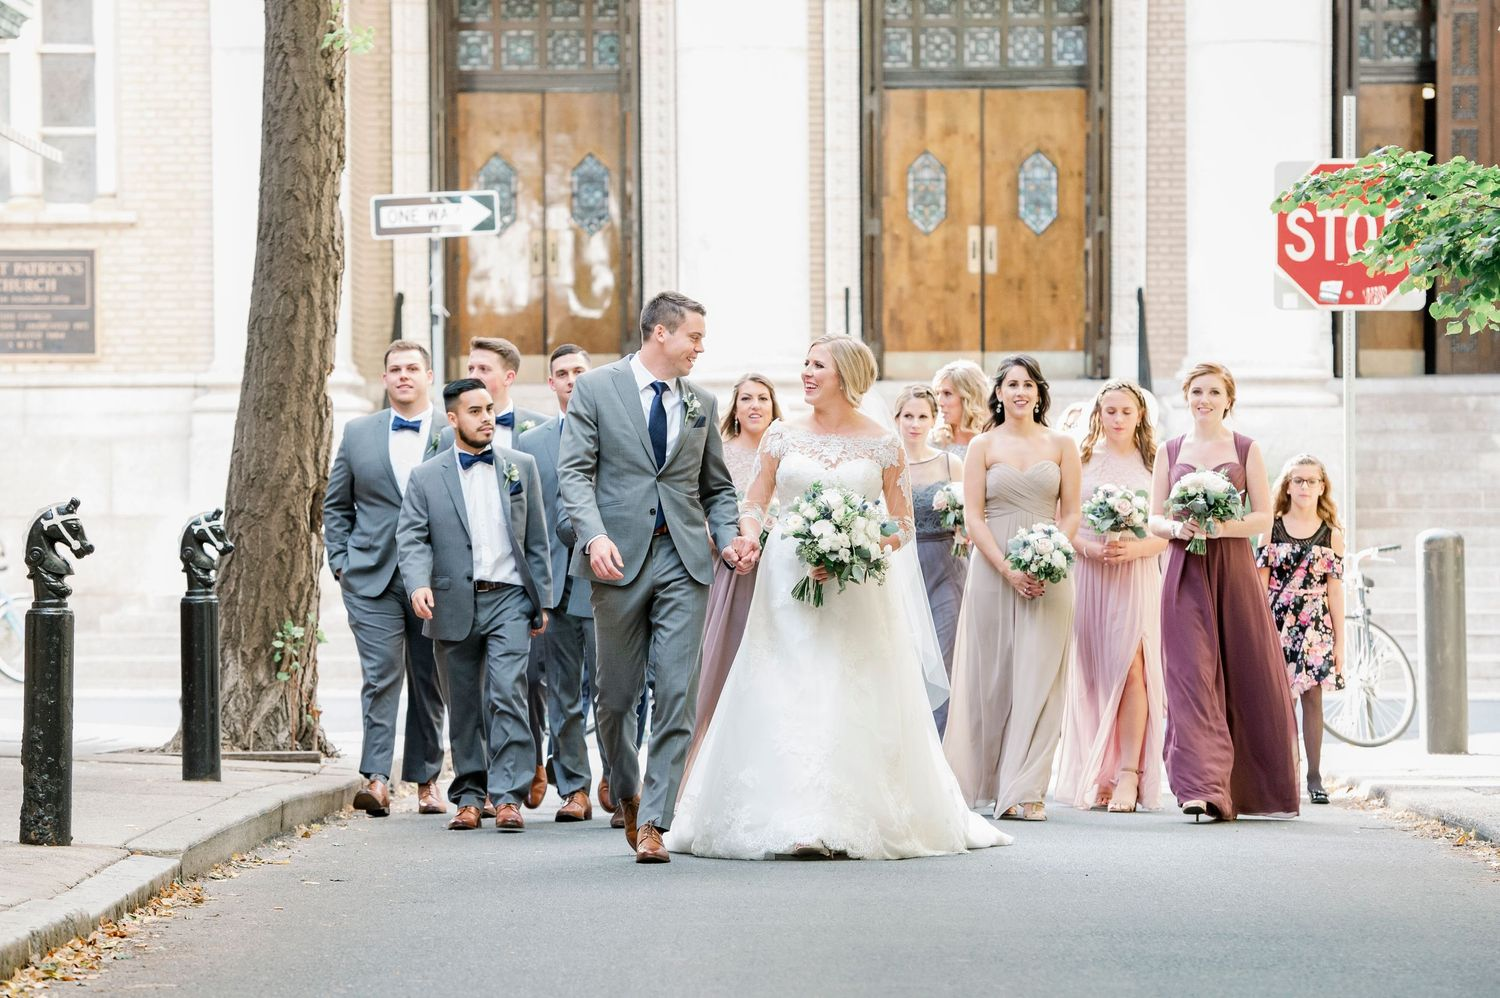 bride and groom and bridal party walking the streets of Philadelphia after wedding